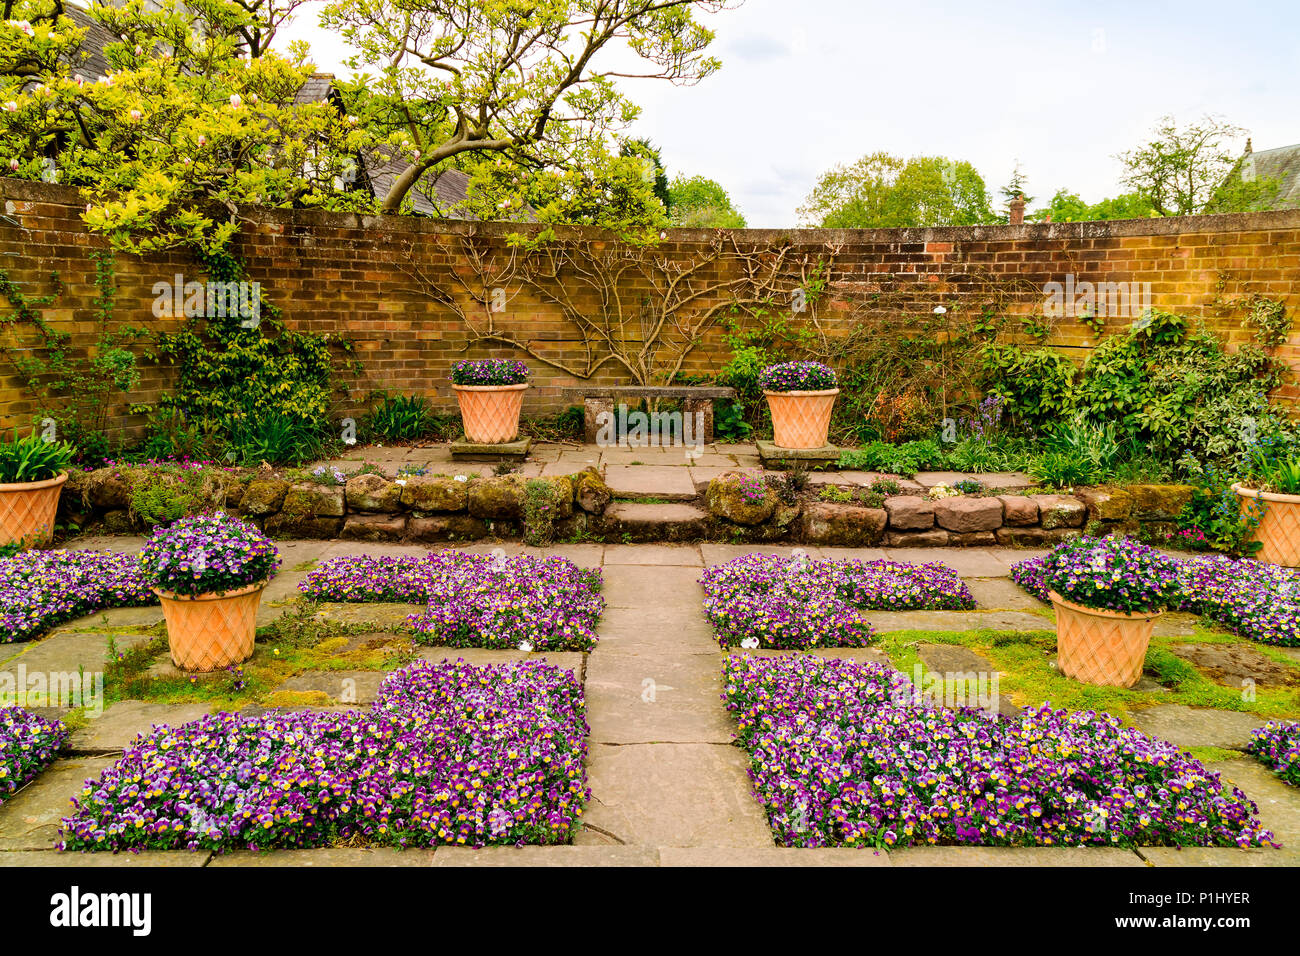 Flagged walled garden corner with purple violas on the ground and in terracotta pots. - Stock Image